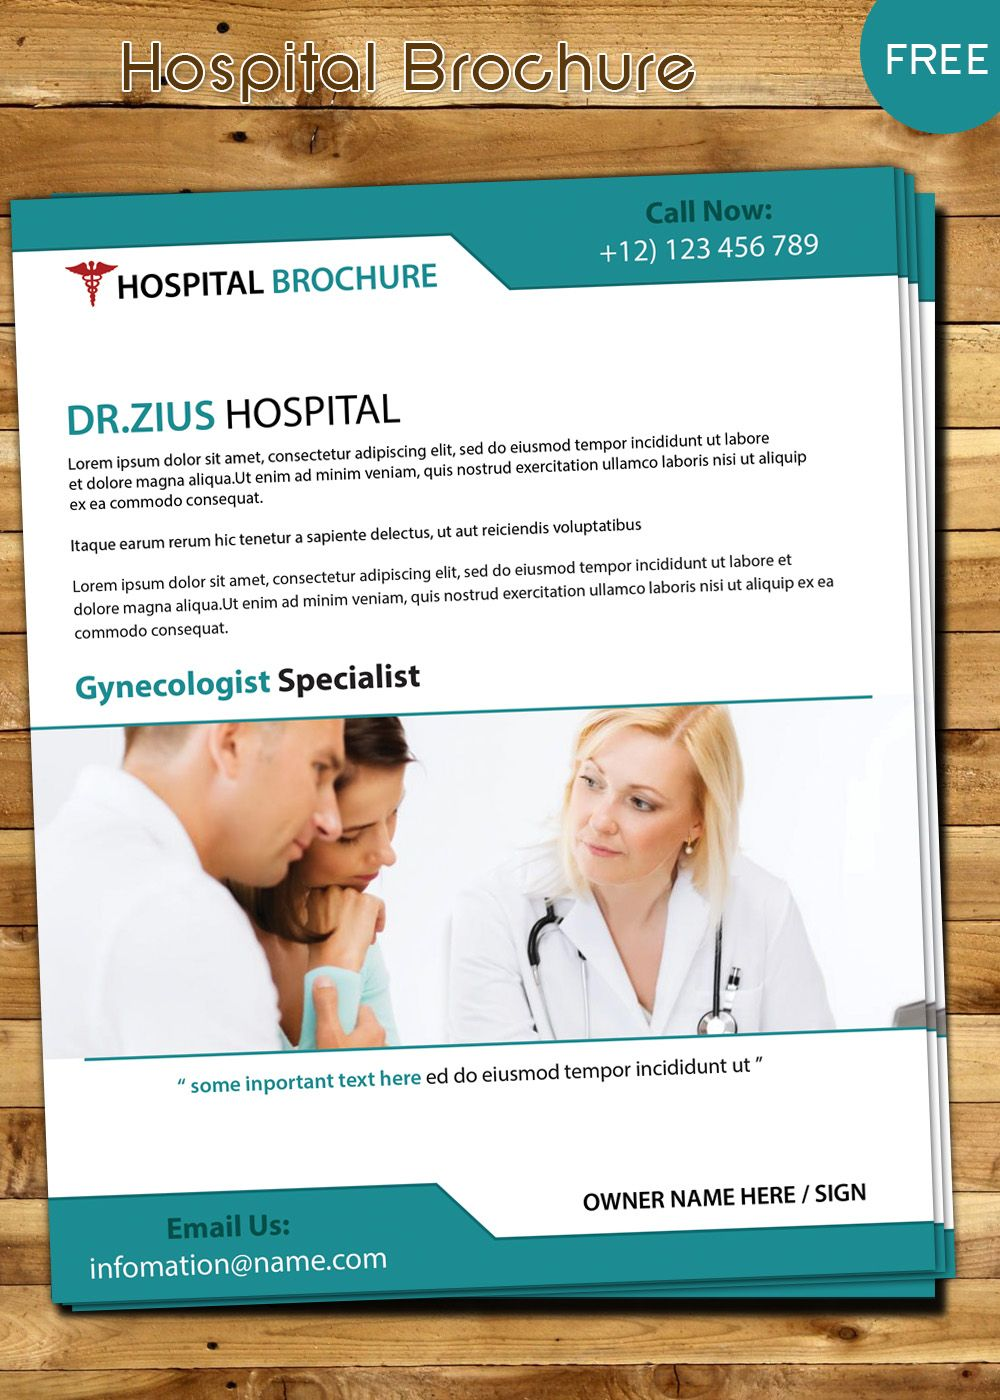 Free Hospital Brochure Template Download Brochure Design - Healthcare brochure templates free download